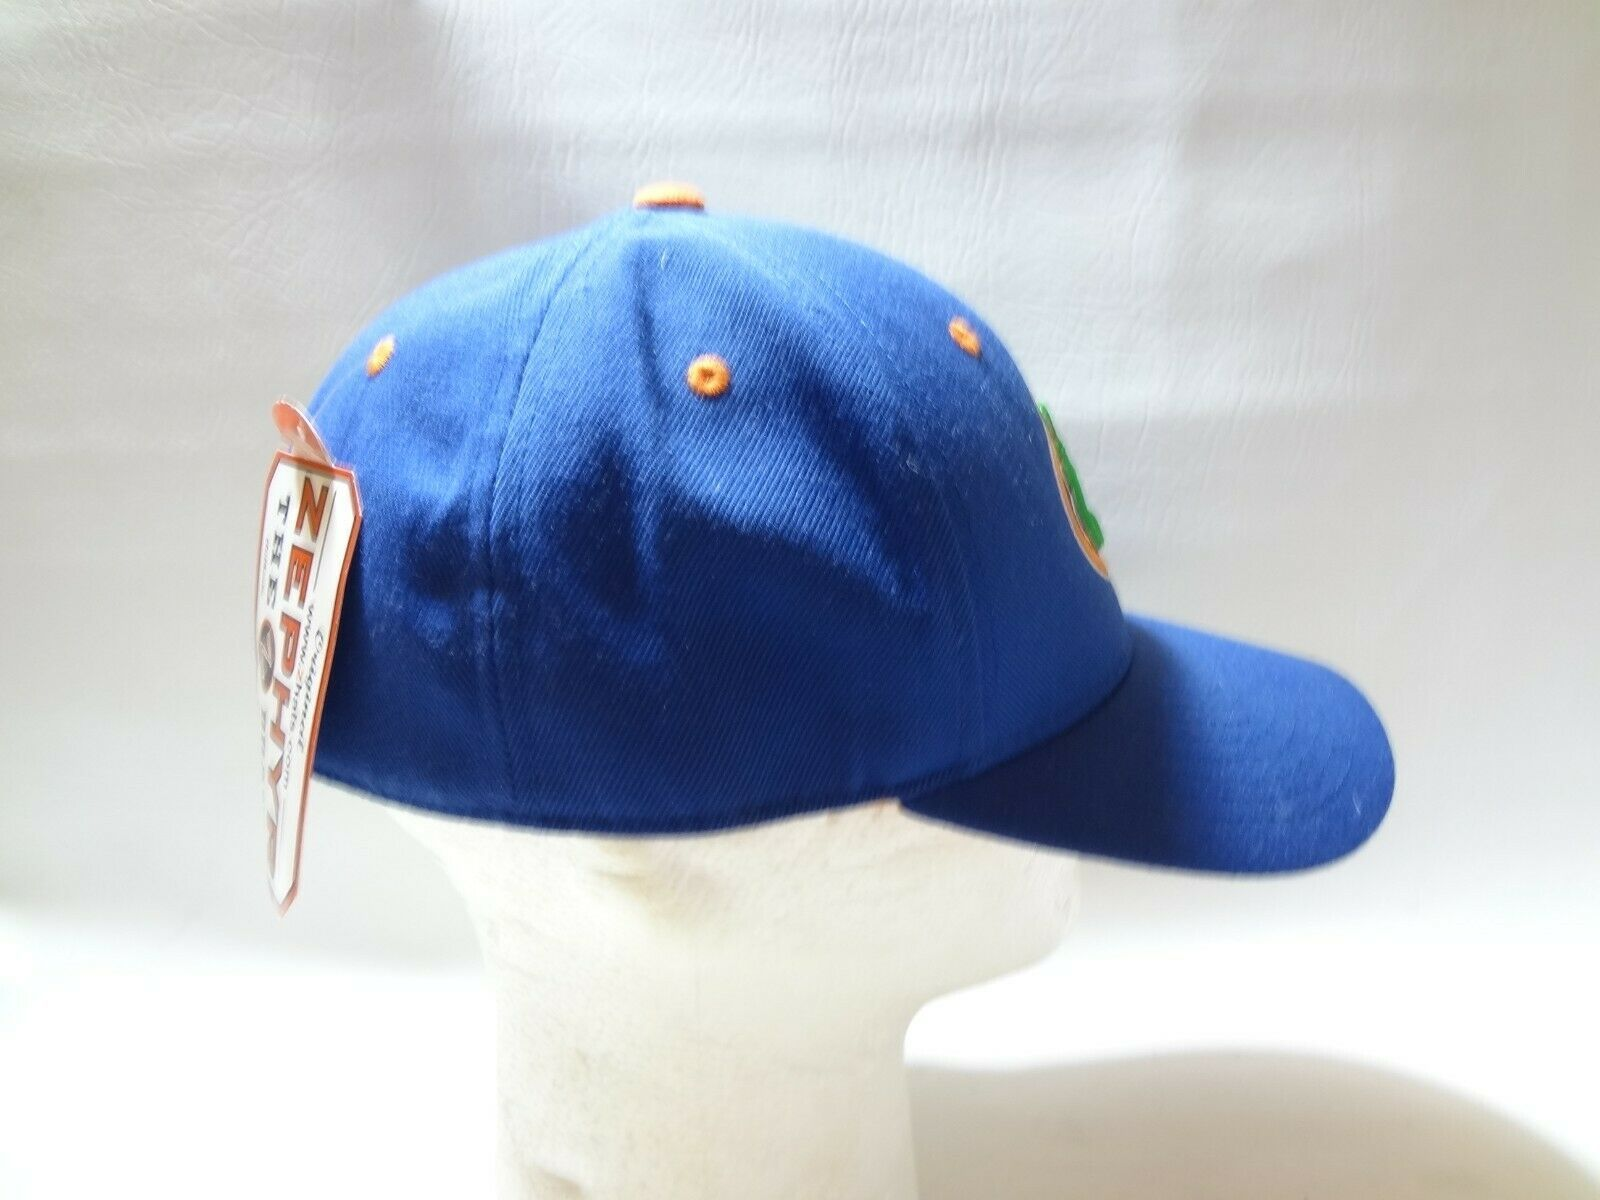 New University Of Florida UF Zephyr Fitted Cap Hat 7 1/2 Z brand College  image 8